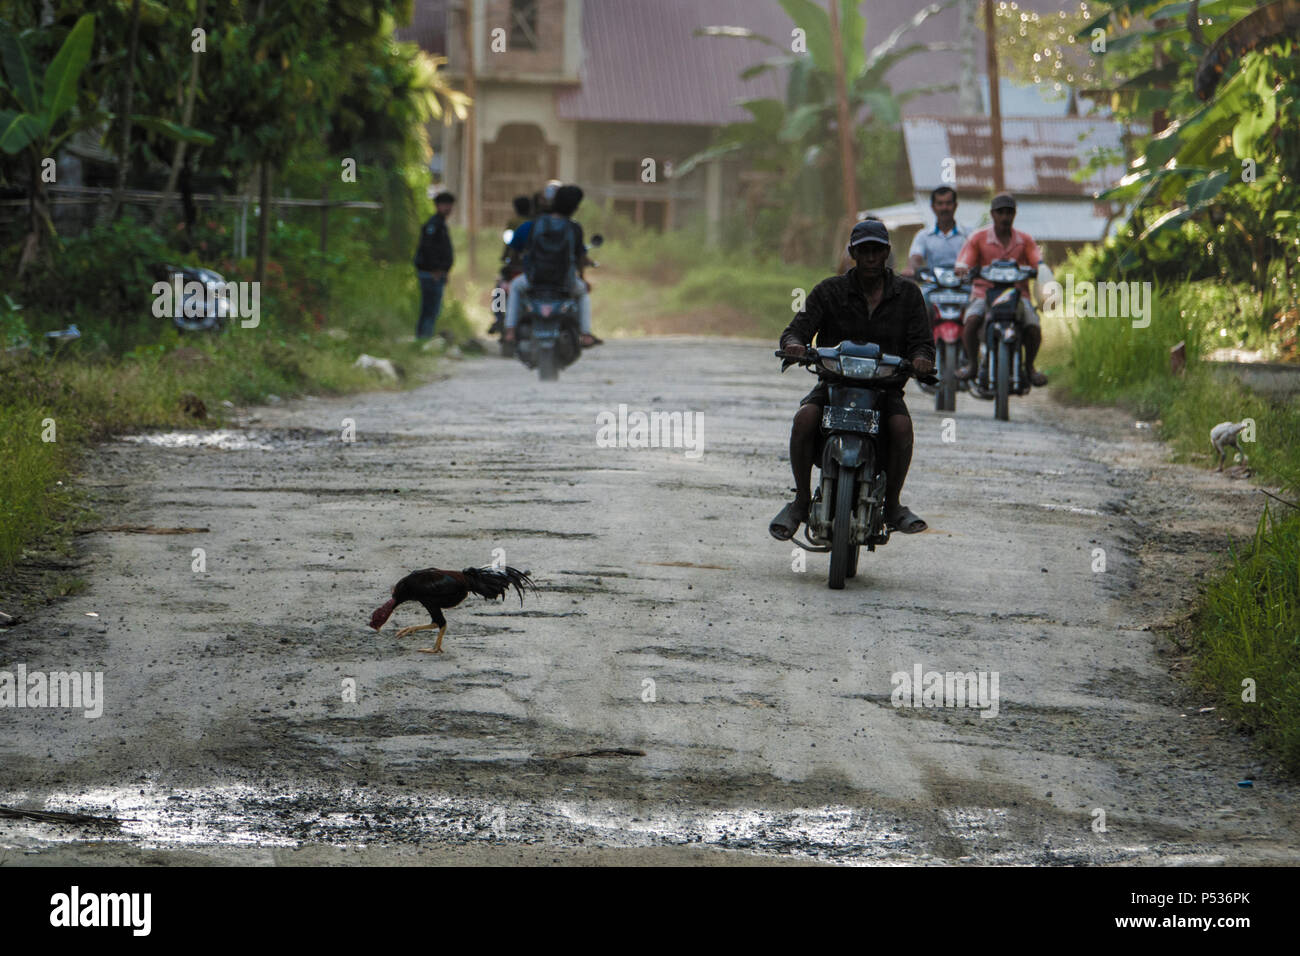 People commuting on motor scooters along potholed road in Afulu, Nias Island, Sumatra, Indonesia - Stock Image